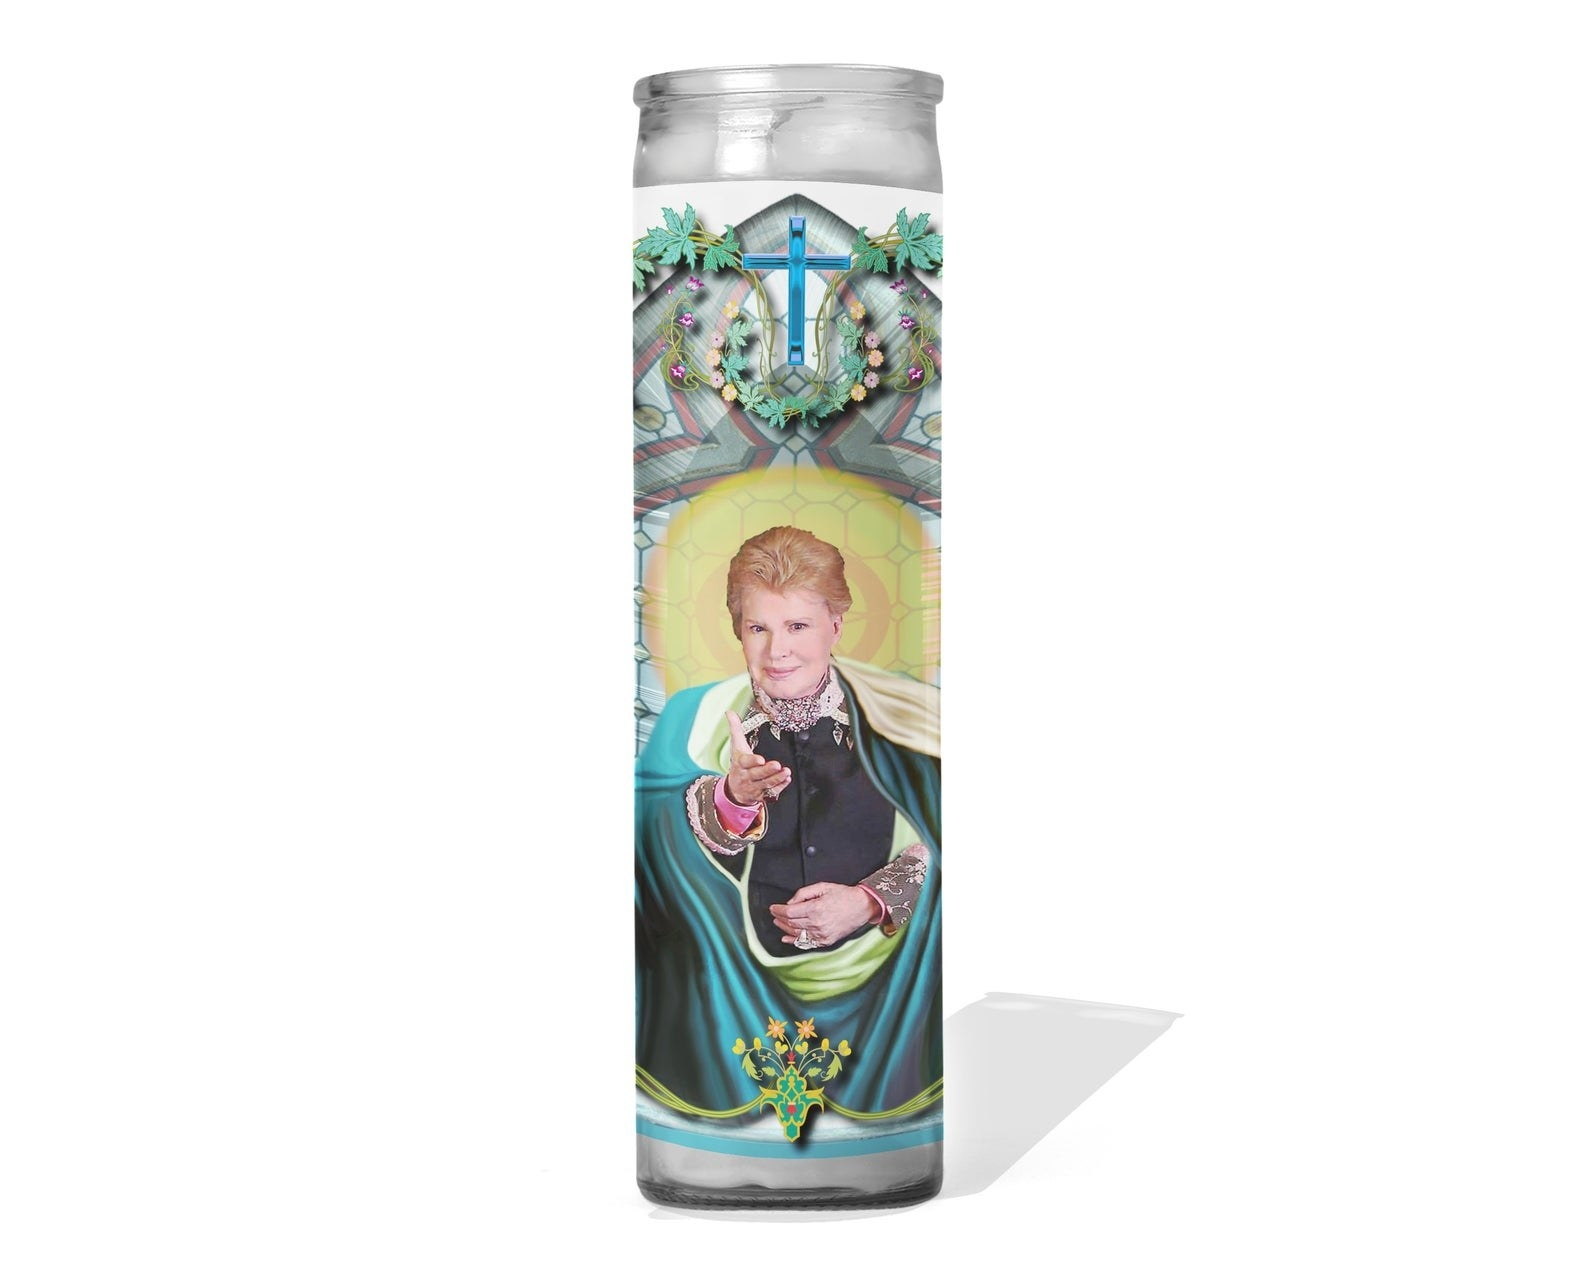 Tall glass candle holder with image of Walter Mercado reaching out his hand